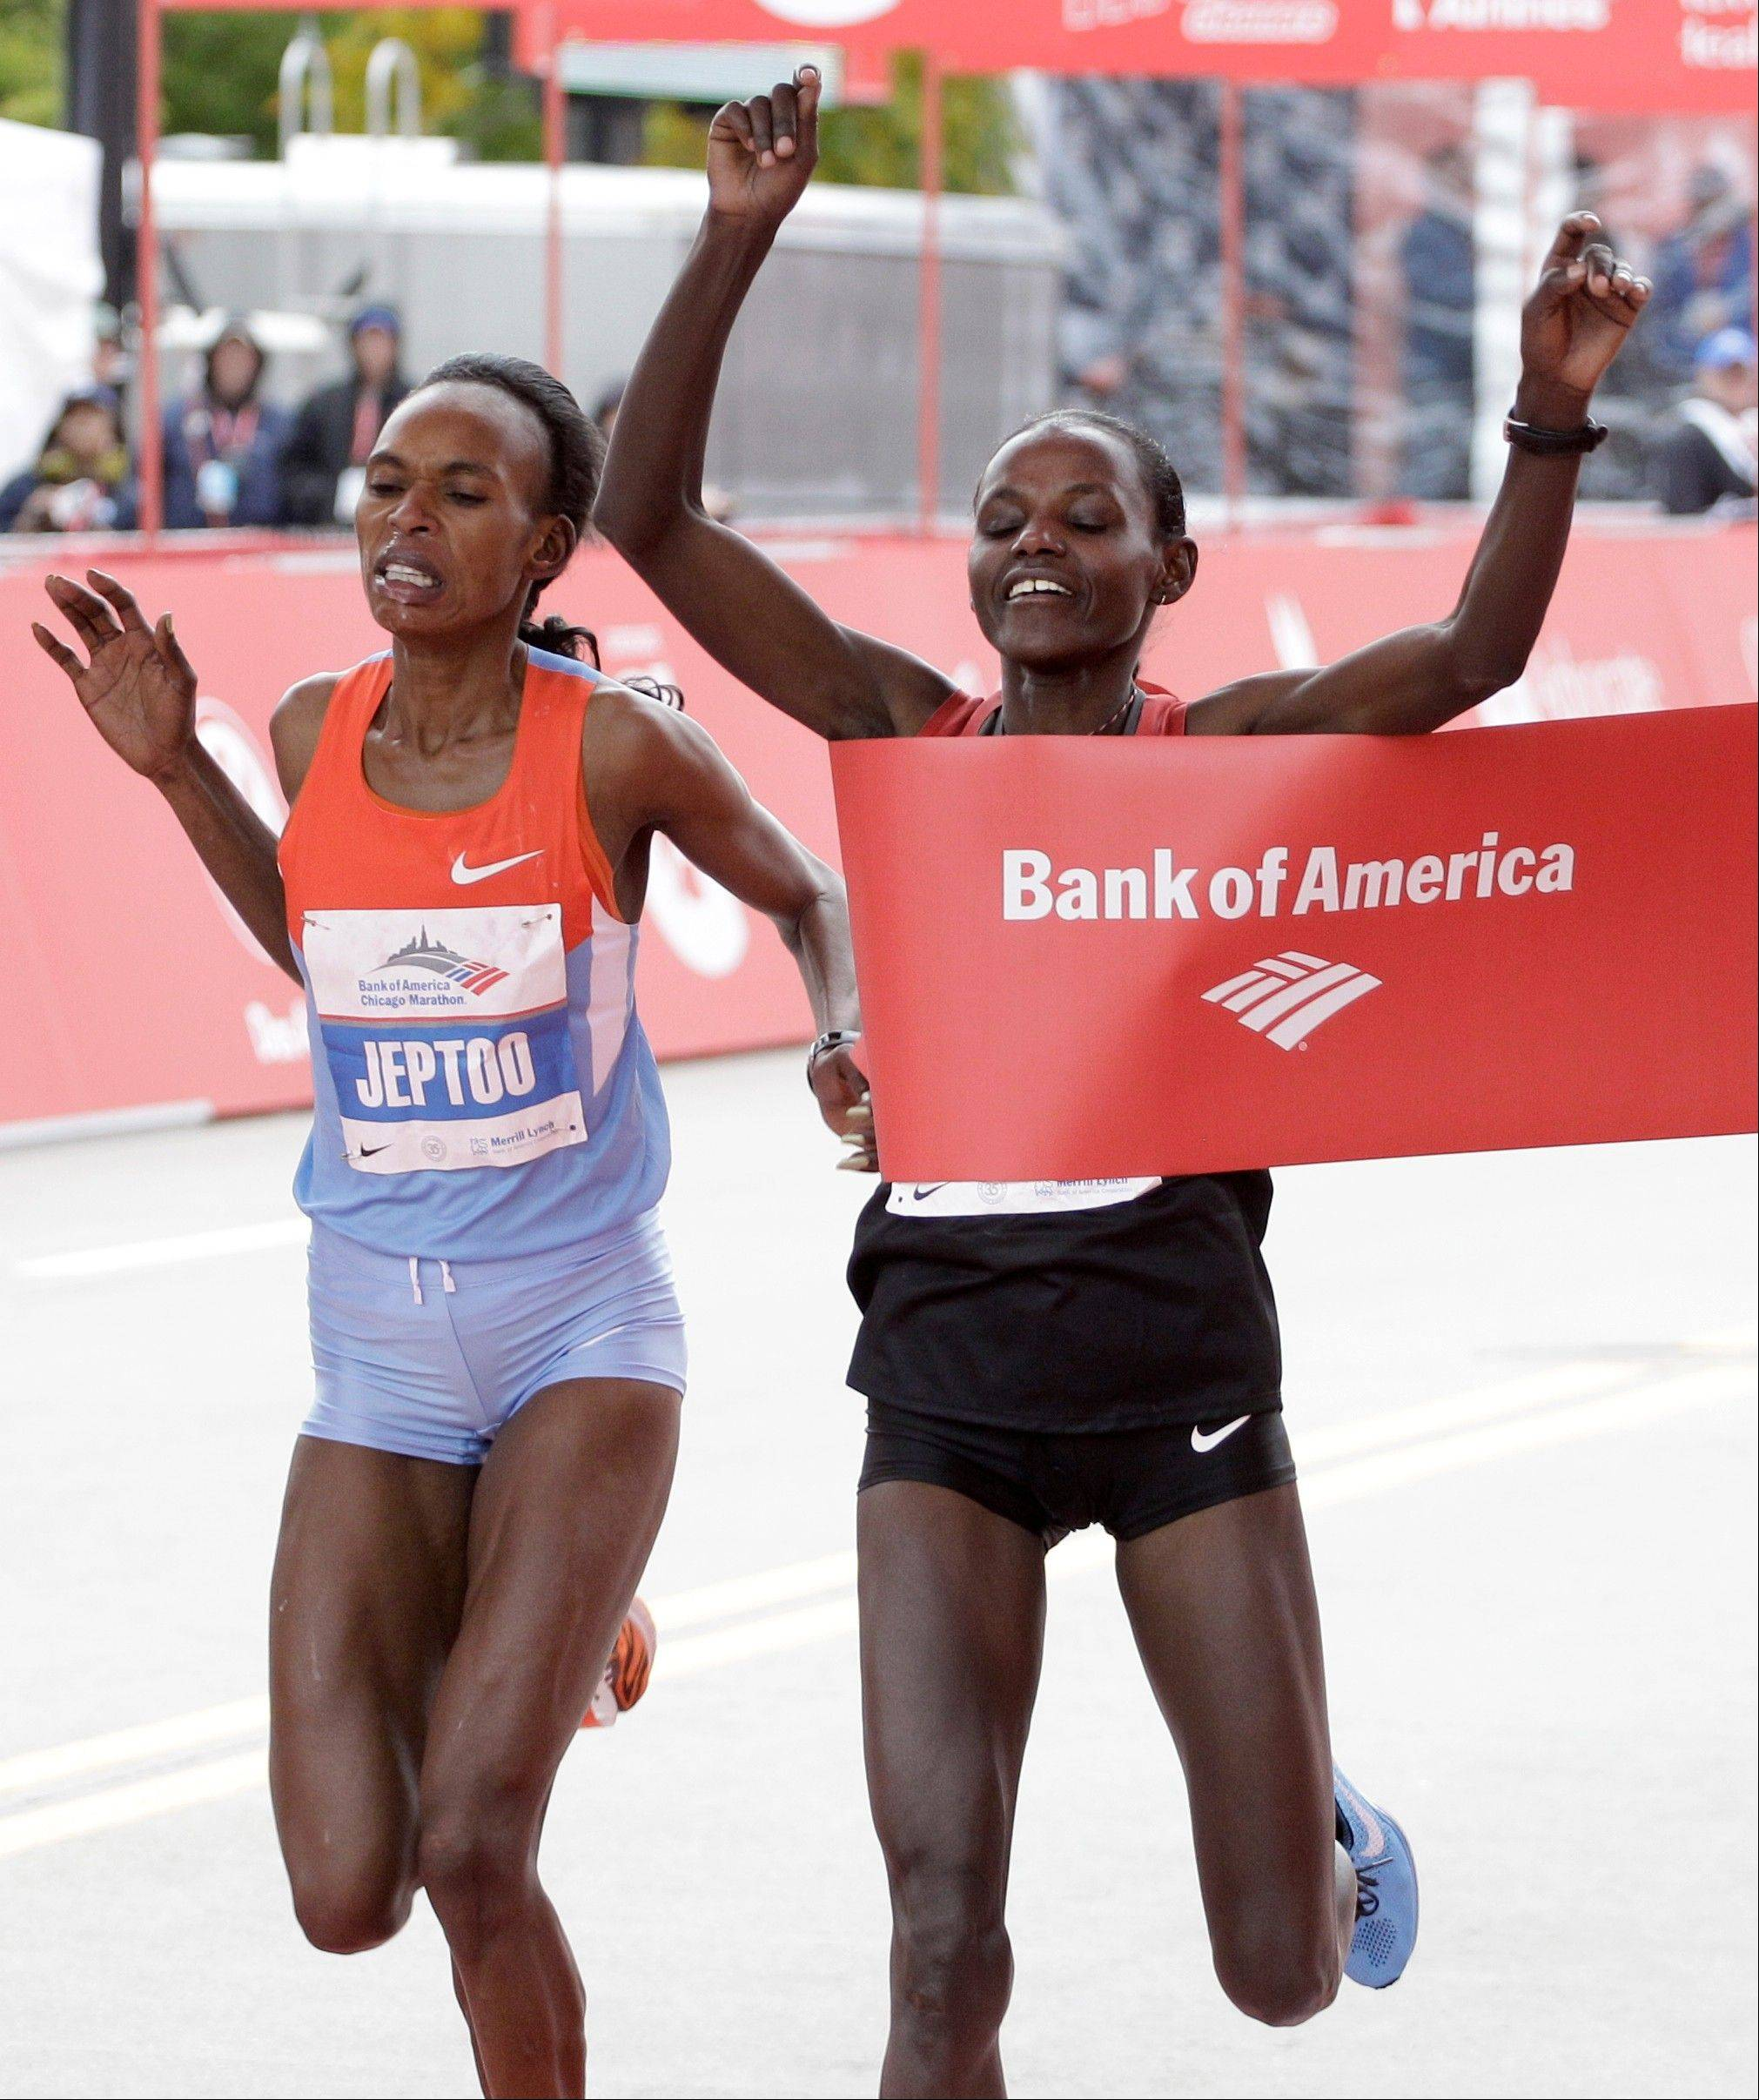 Atsede Baysa of Ethiopia, right, edges out Kenya's Rita Jeptoo by a second to win the 2012 Chicago Marathon. They will meet again in Sunday's race.